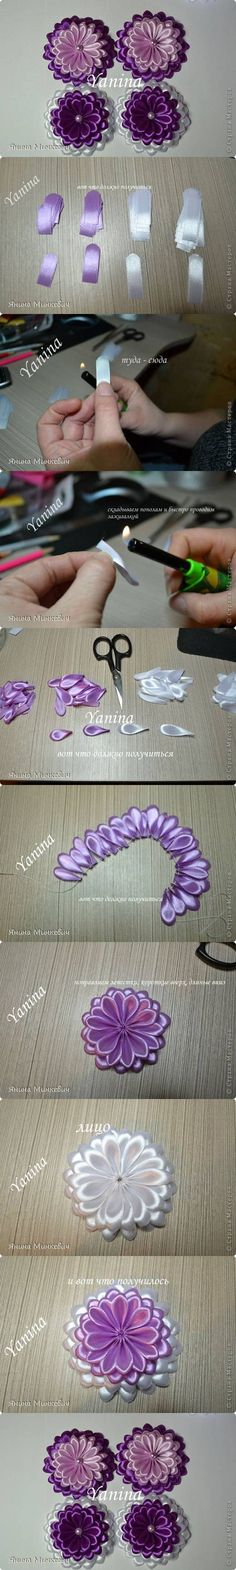 DIY Modular Ribbon Flower